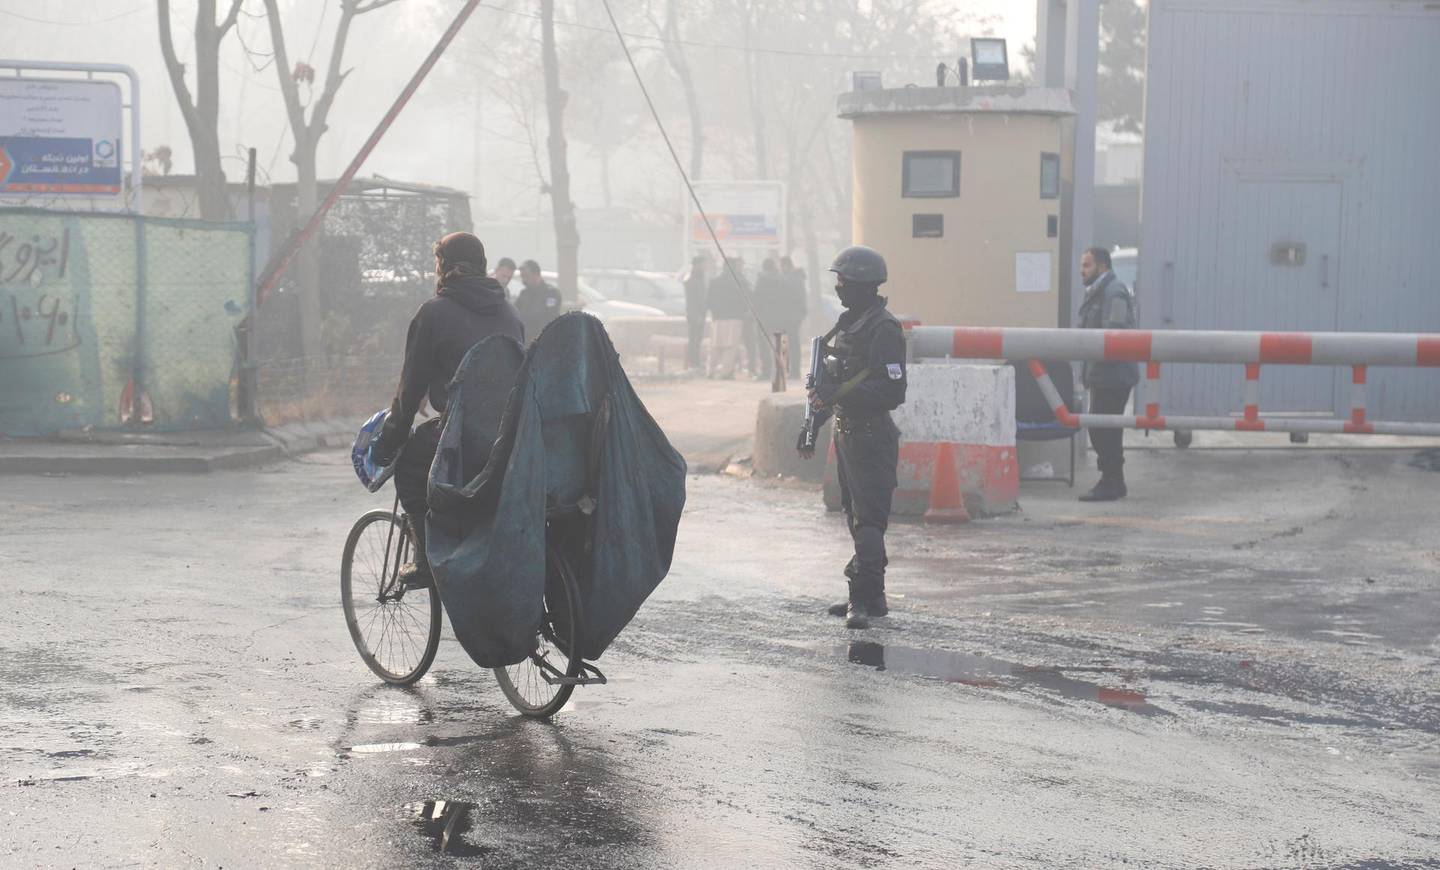 epa07248049 An Afghan soldier secure the area outside the gate of a government building a day after a complex suicide attack in Kabul, Afghanistan, 25 December 2018. According to the ministry of health officials, at least 43 people were killed and 25 others wounded after suicide attackers armed with assault rifles and grenades stormed to a government building.  EPA/JAWAD JALALI